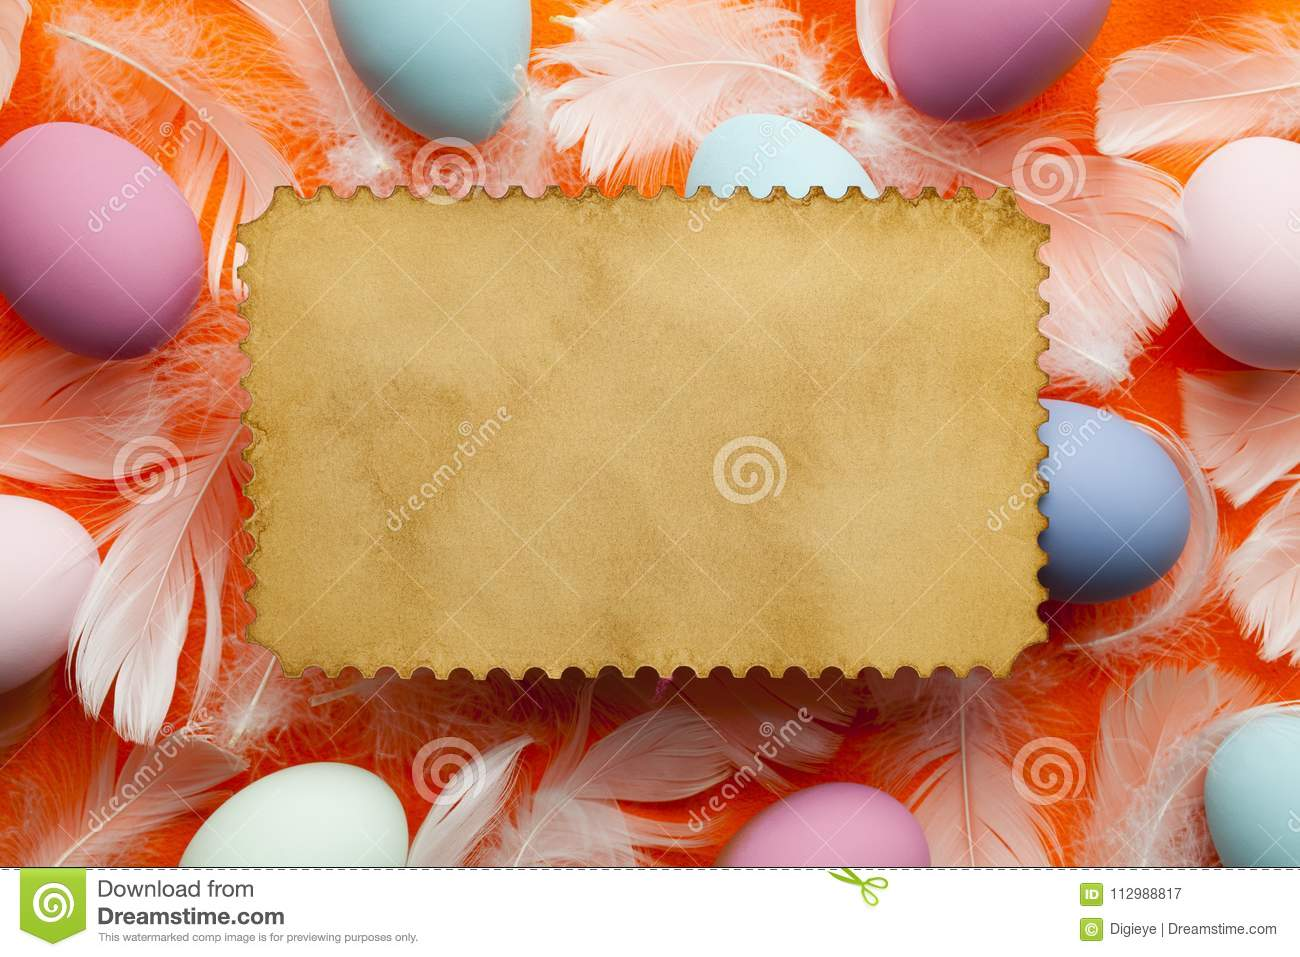 Blank paper label, colored Easter eggs and white feathers